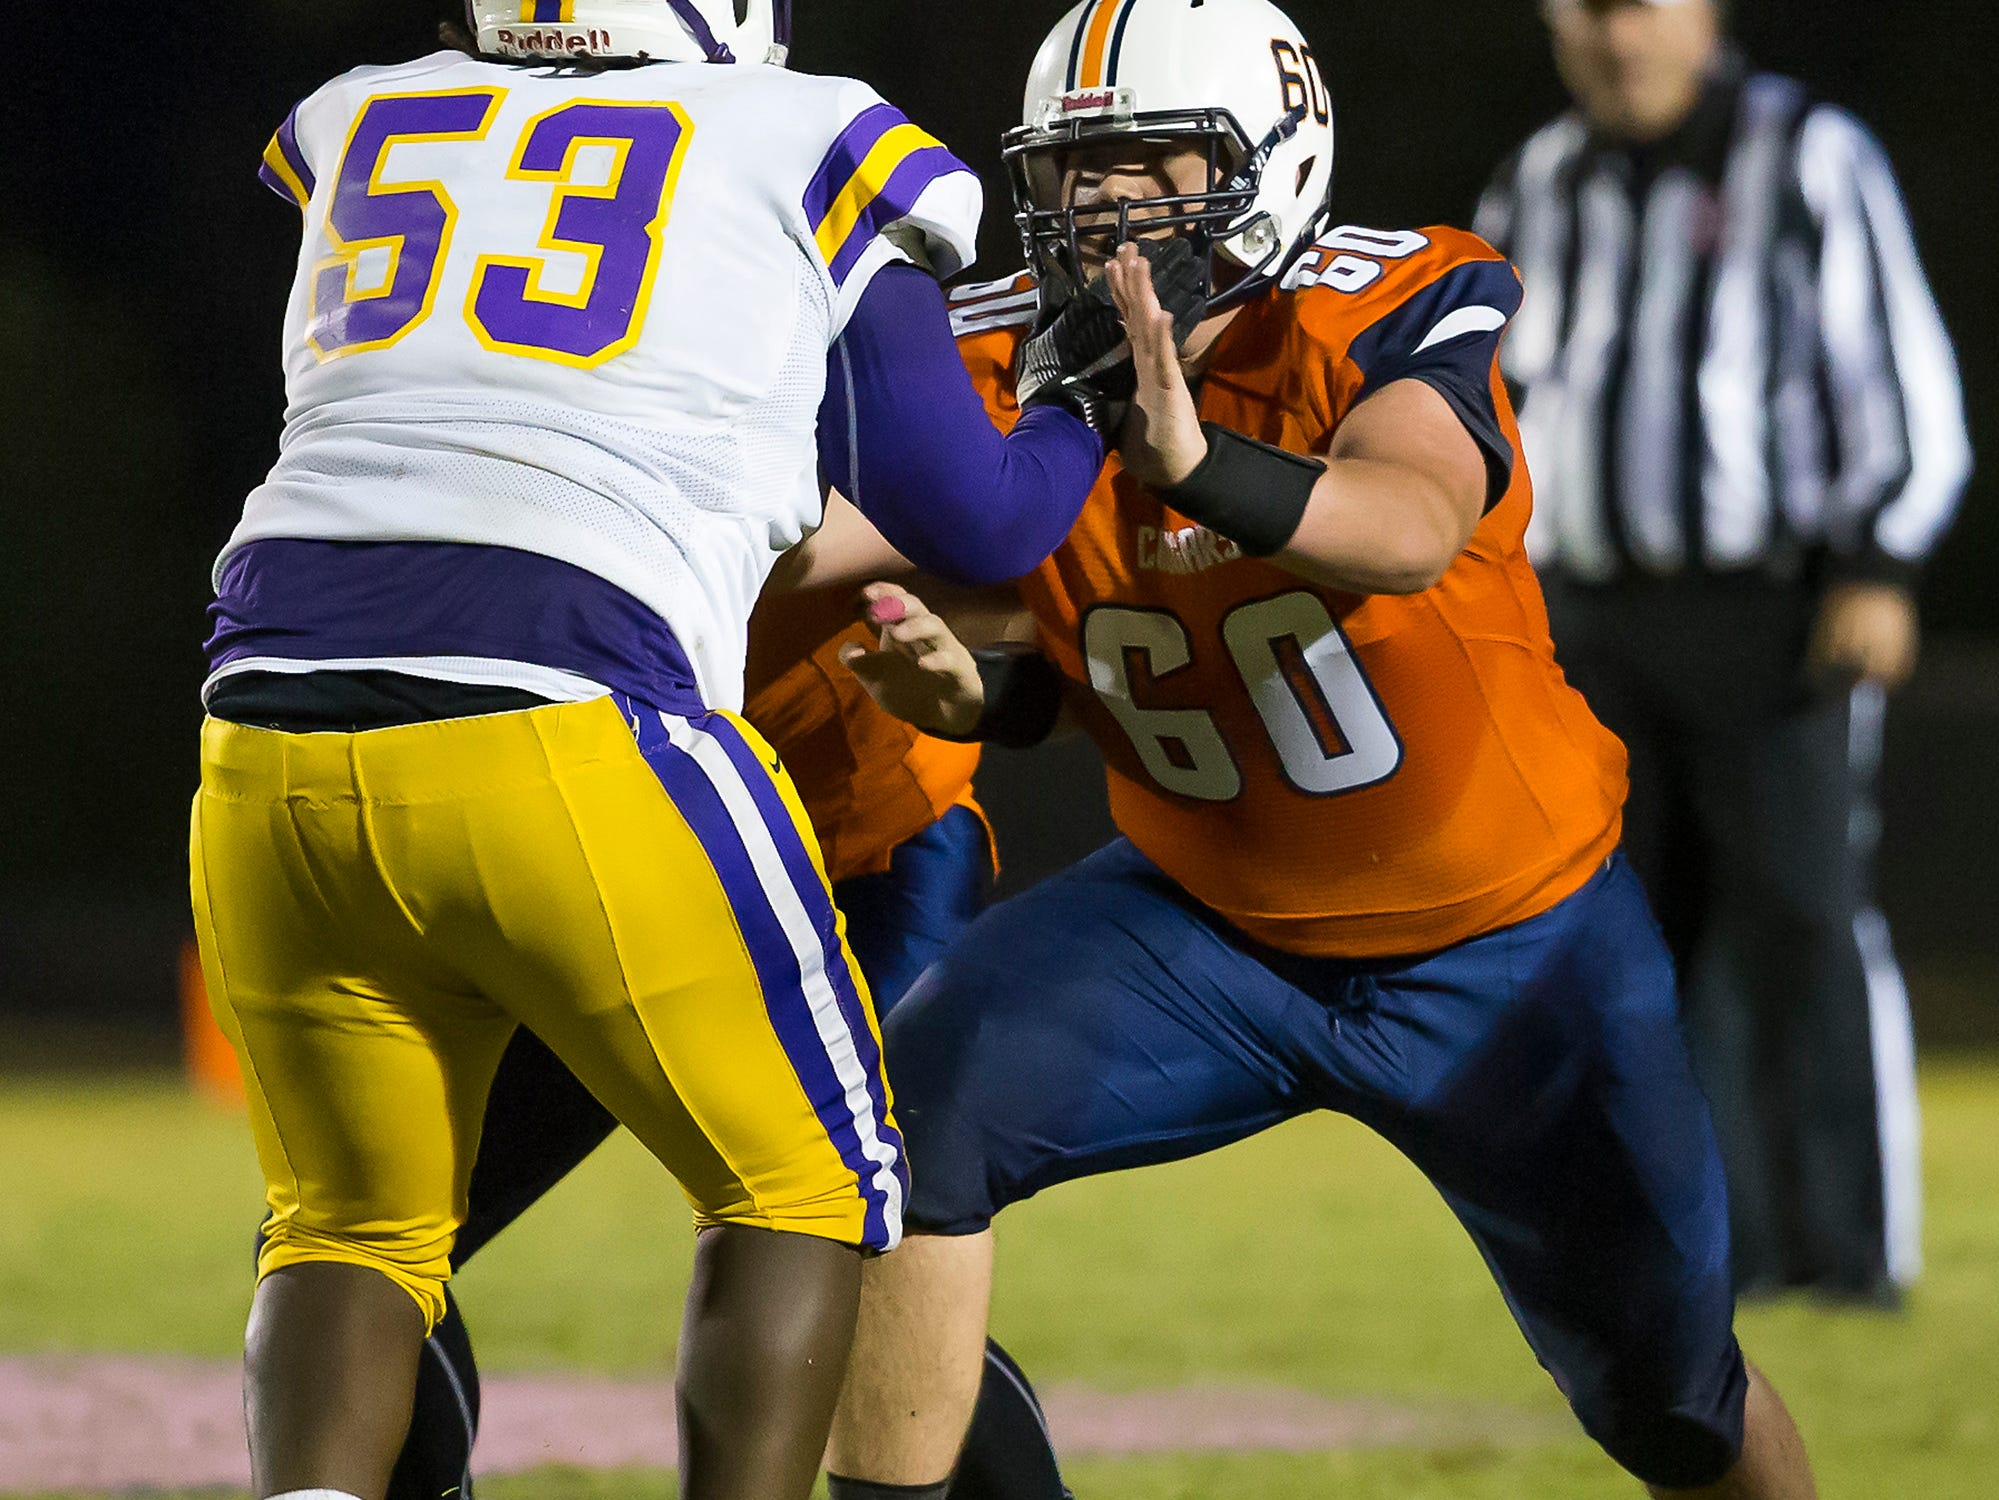 Dickson County's Noah Chapdelaine goes against a Lawrence County lineman.